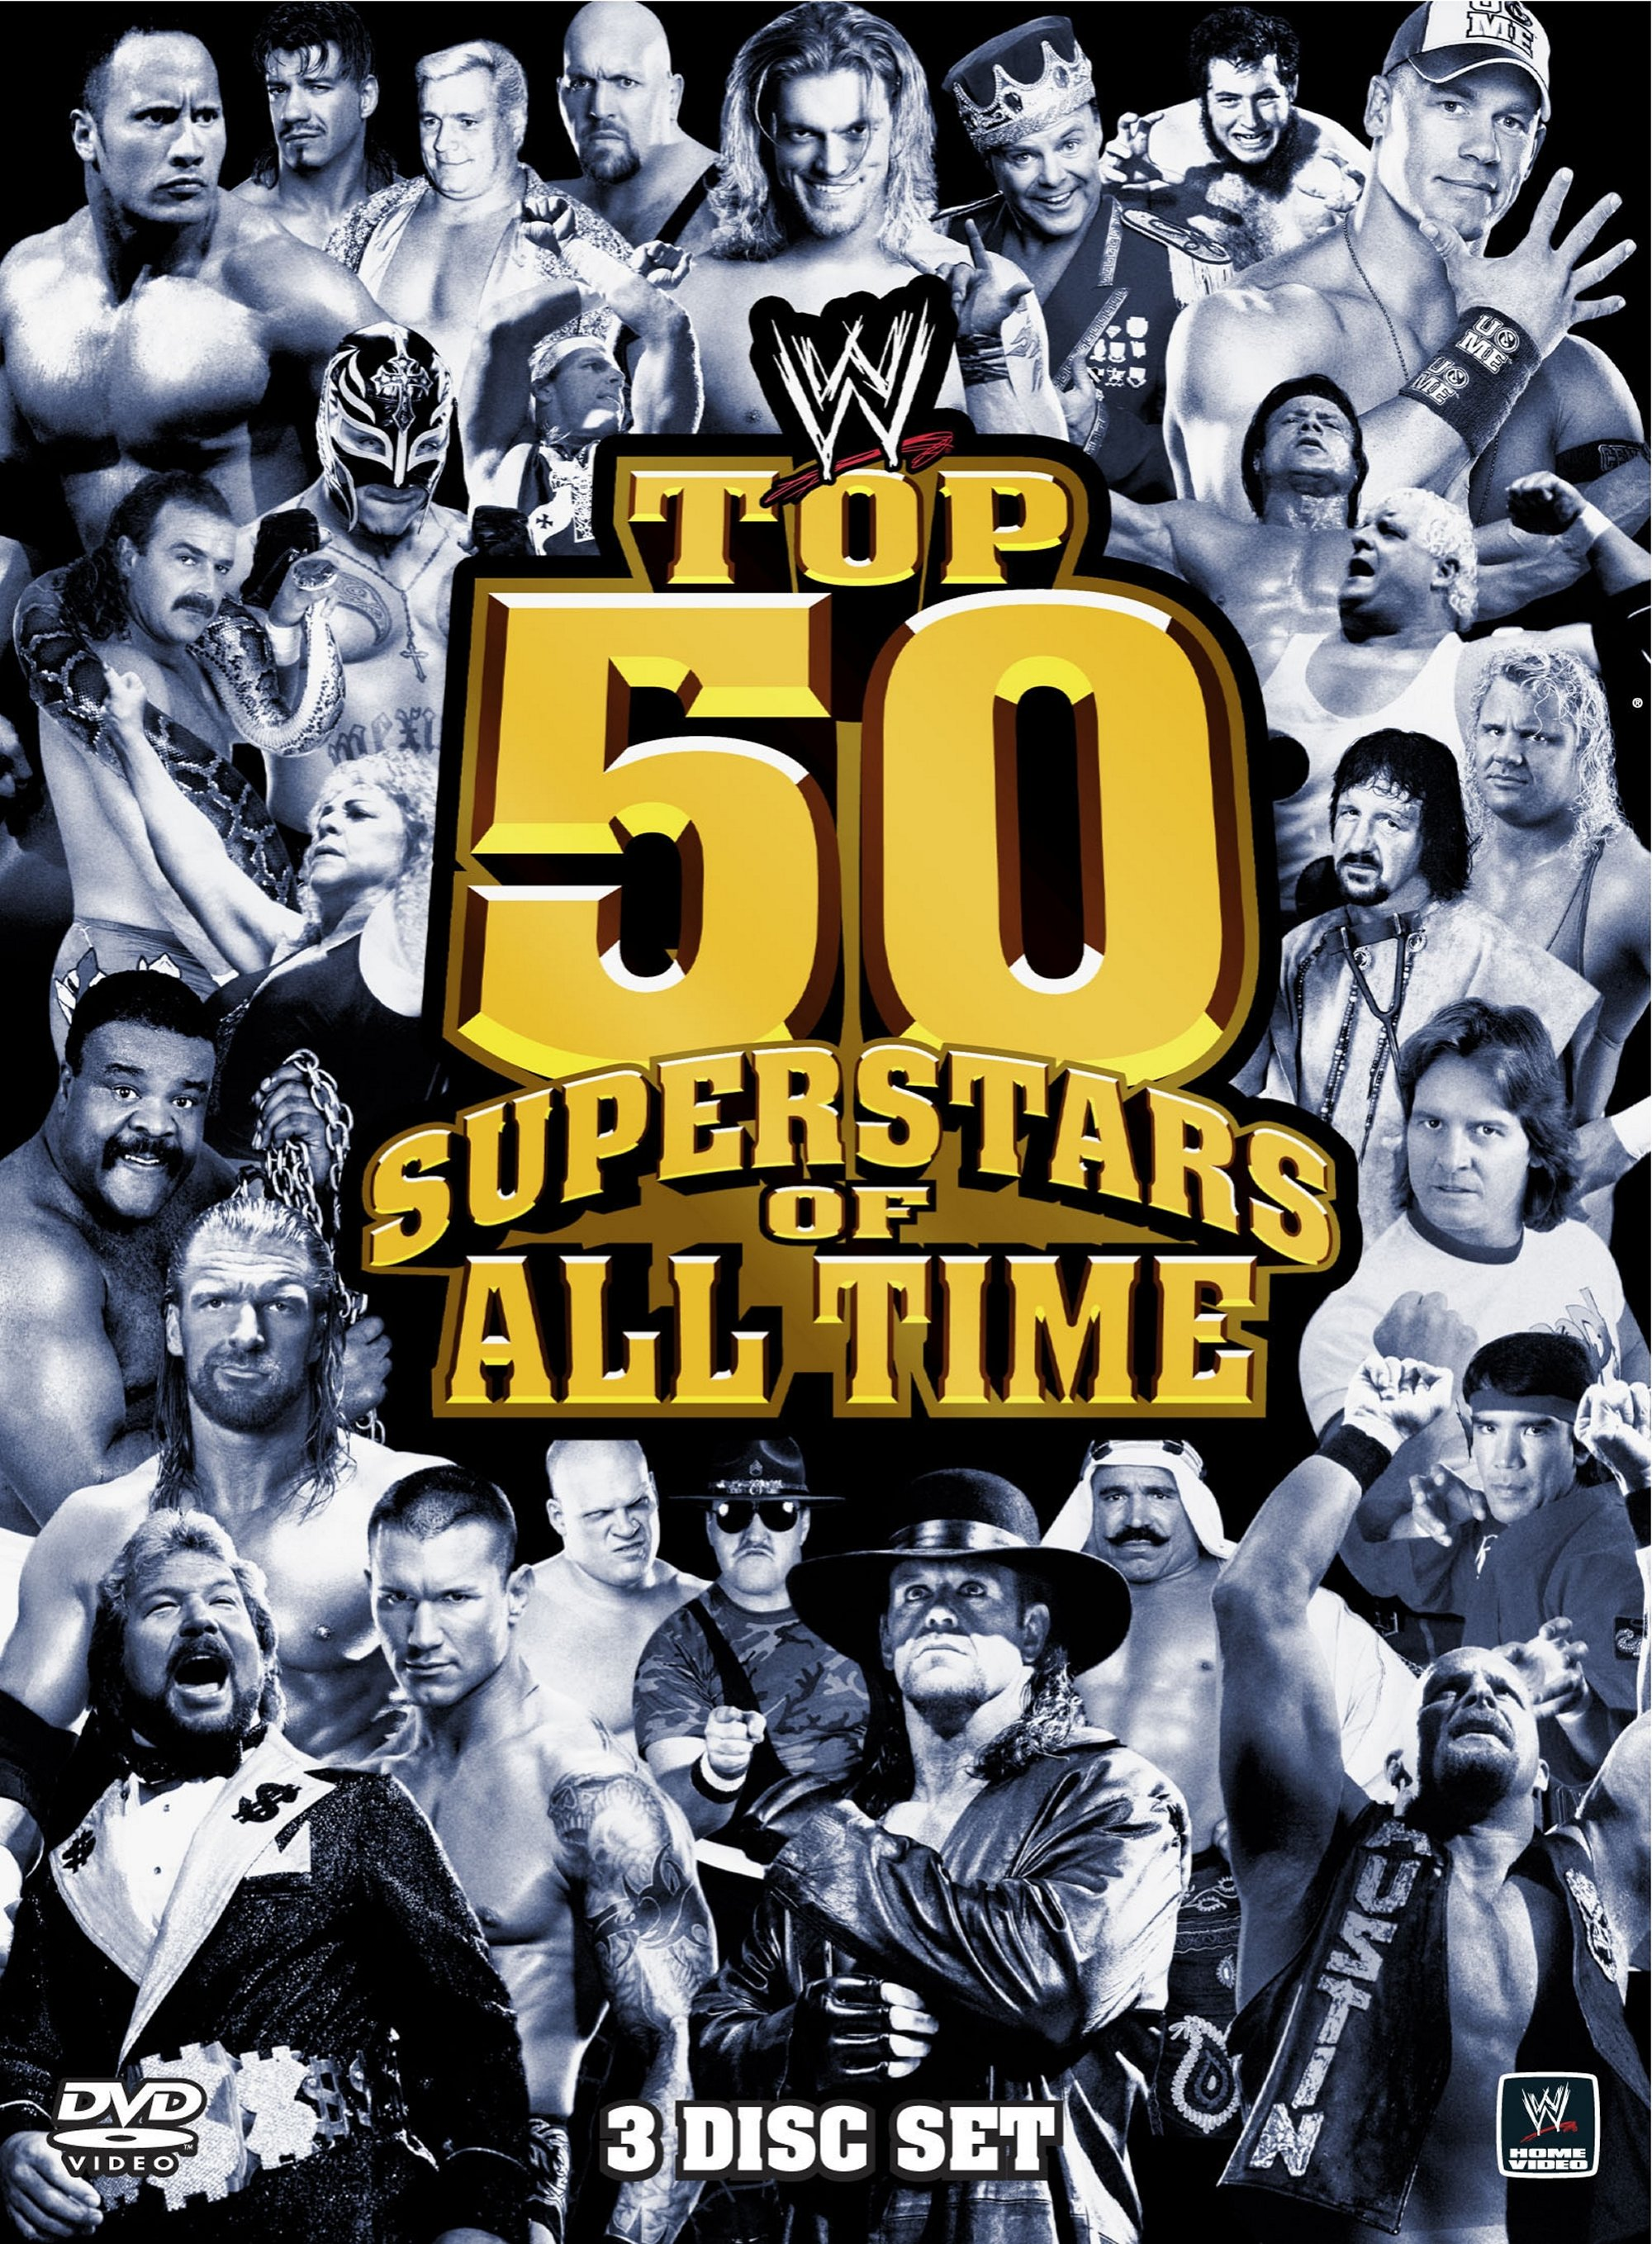 The Top 50 Superstars Of All Time (DVD)